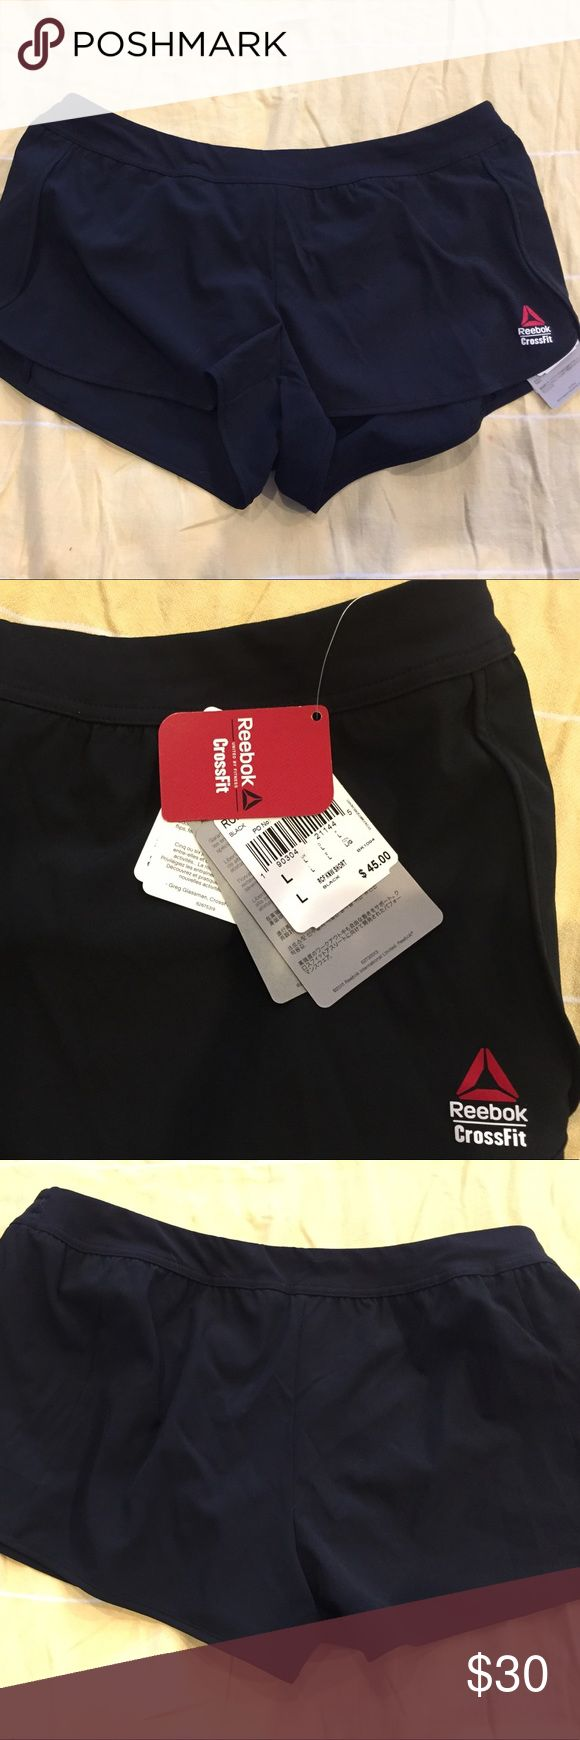 CrossFit Shorts Reebok CrossFit shorts with inner lining. Never worn, NWT. Reebok Shorts